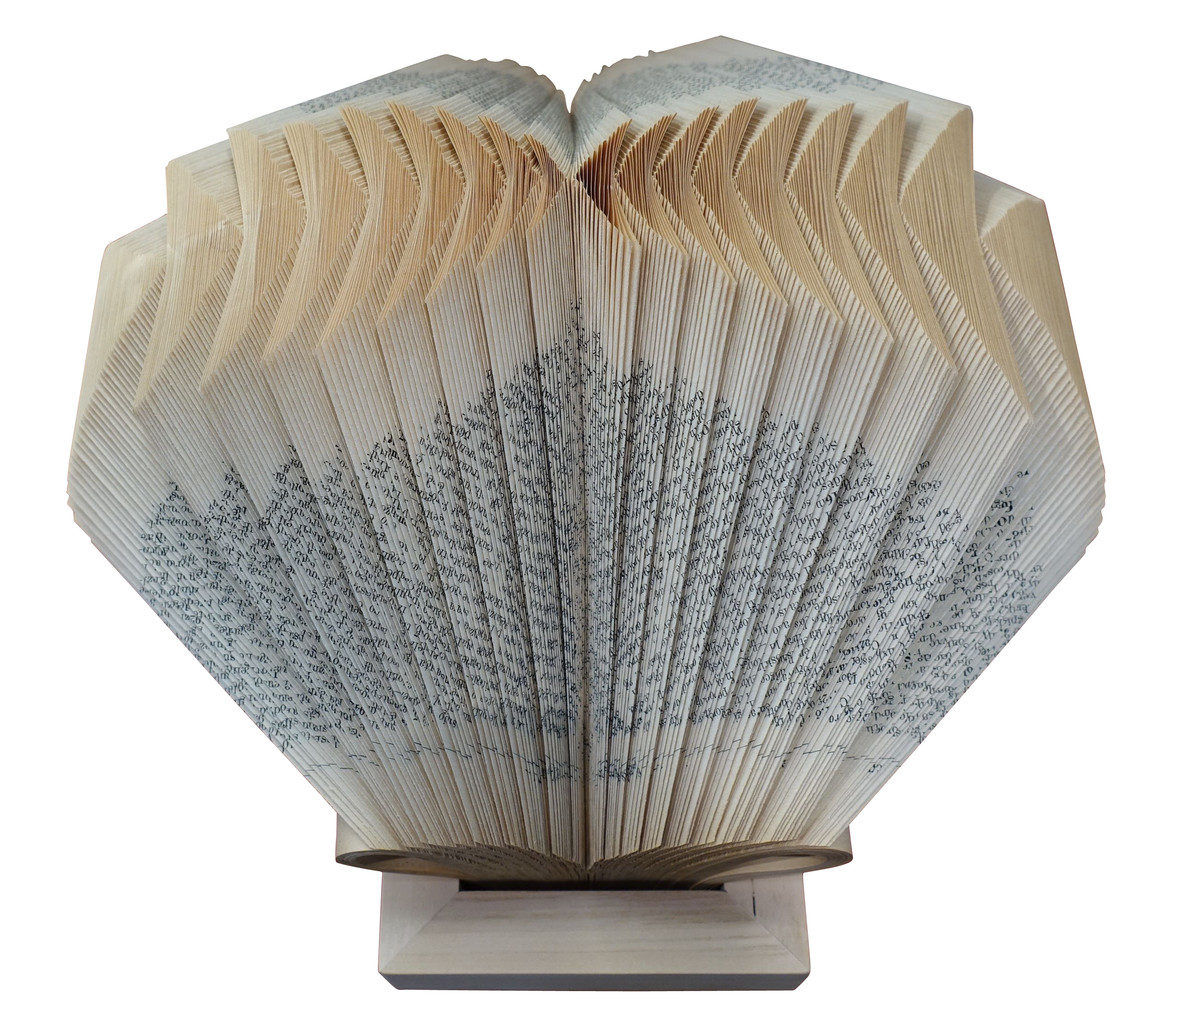 Balsamo antiques contemporary italian folded book sculpture for Decorative objects for home